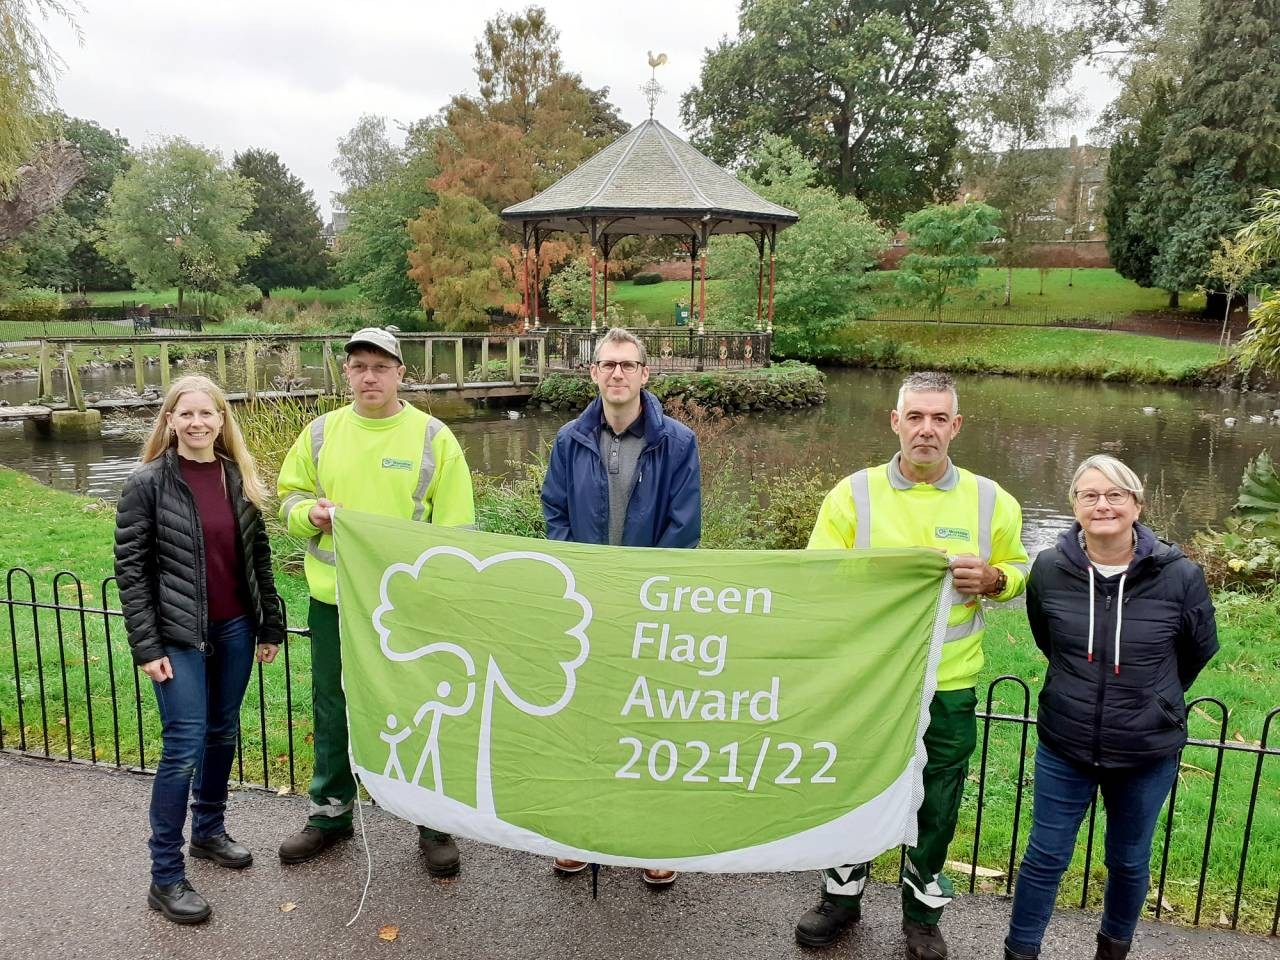 Cllr-Andy-Stafford-centre-with-Gheluvelt-Park-keepers-Matthew-Hughes-L-and-Neil-Bushell-R-with-Friends-of-Ghelulvelt-Park-members-Cllr-Karen-Lewing-L-and-Stephanie-Allen